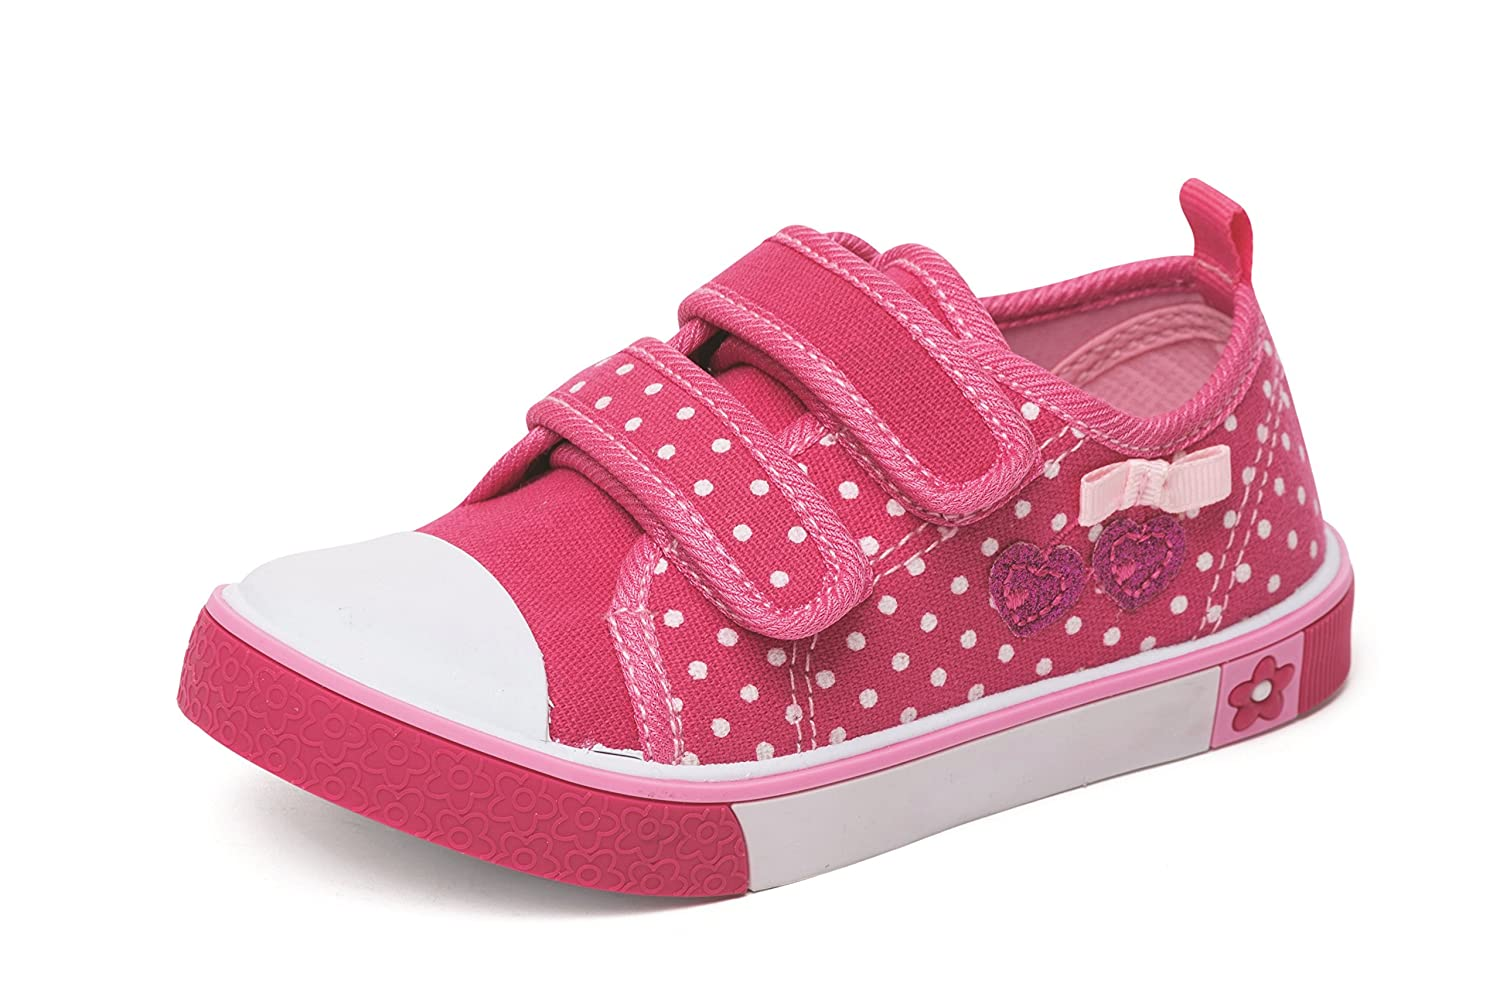 GIRLS INFANTS CHATTERBOX PINK POLKA DOT CANVAS TRAINERS PUMPS SHOES UK SIZE 4